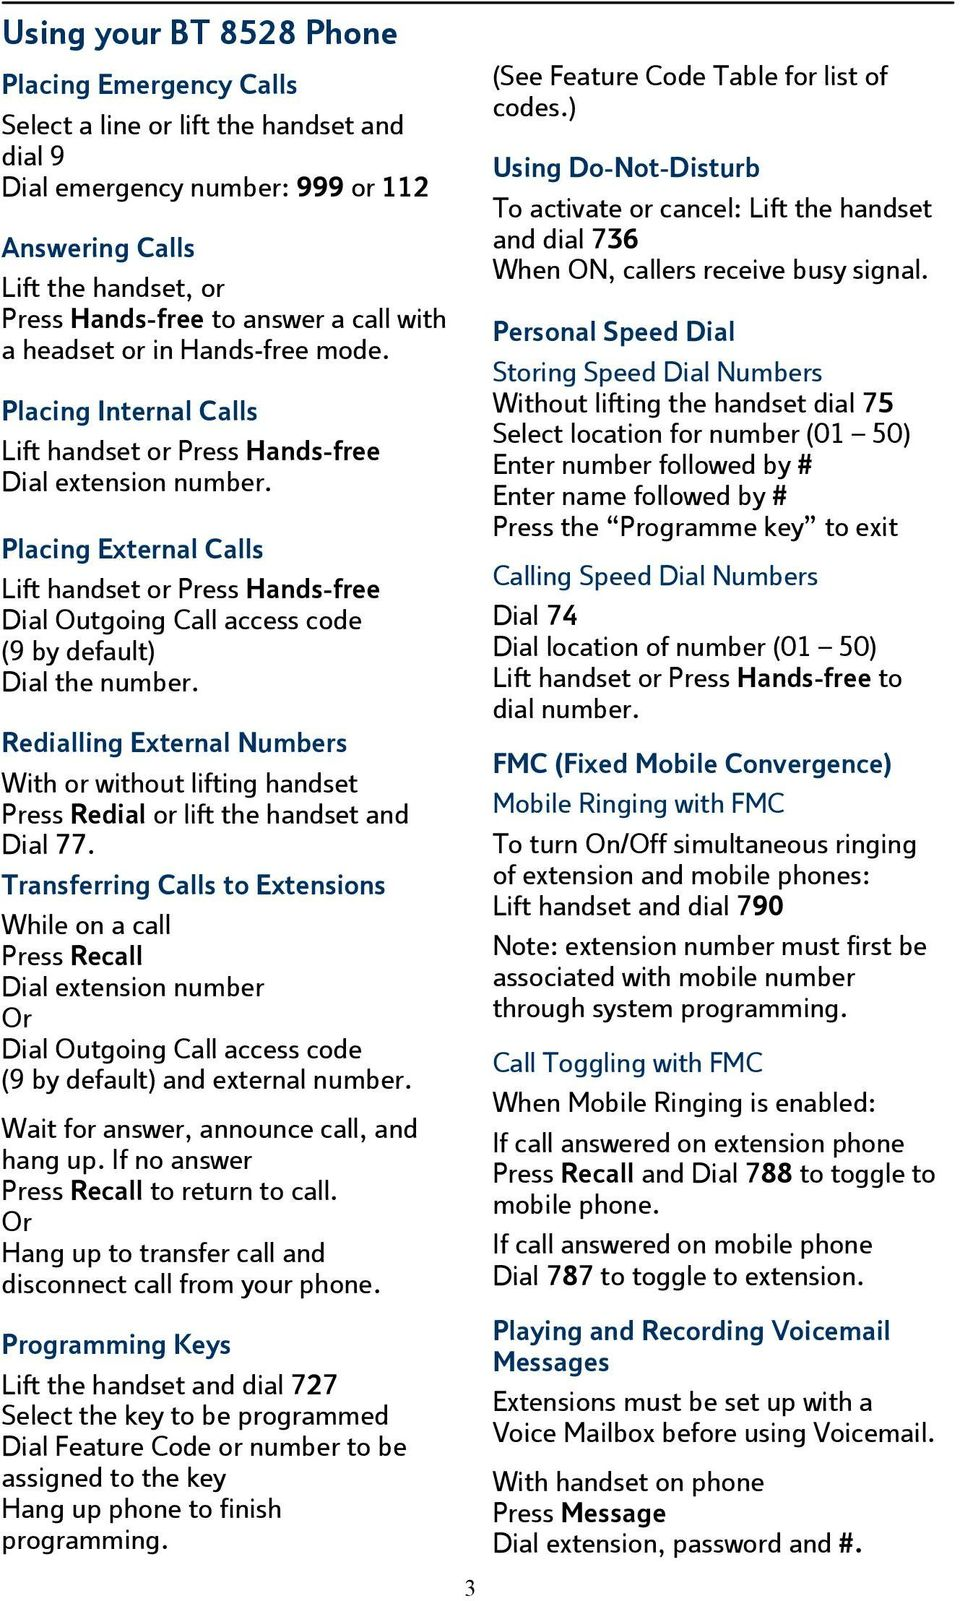 Placing External Calls Lift handset or Press Hands-free Dial Outgoing Call access code (9 by default) Dial the number.